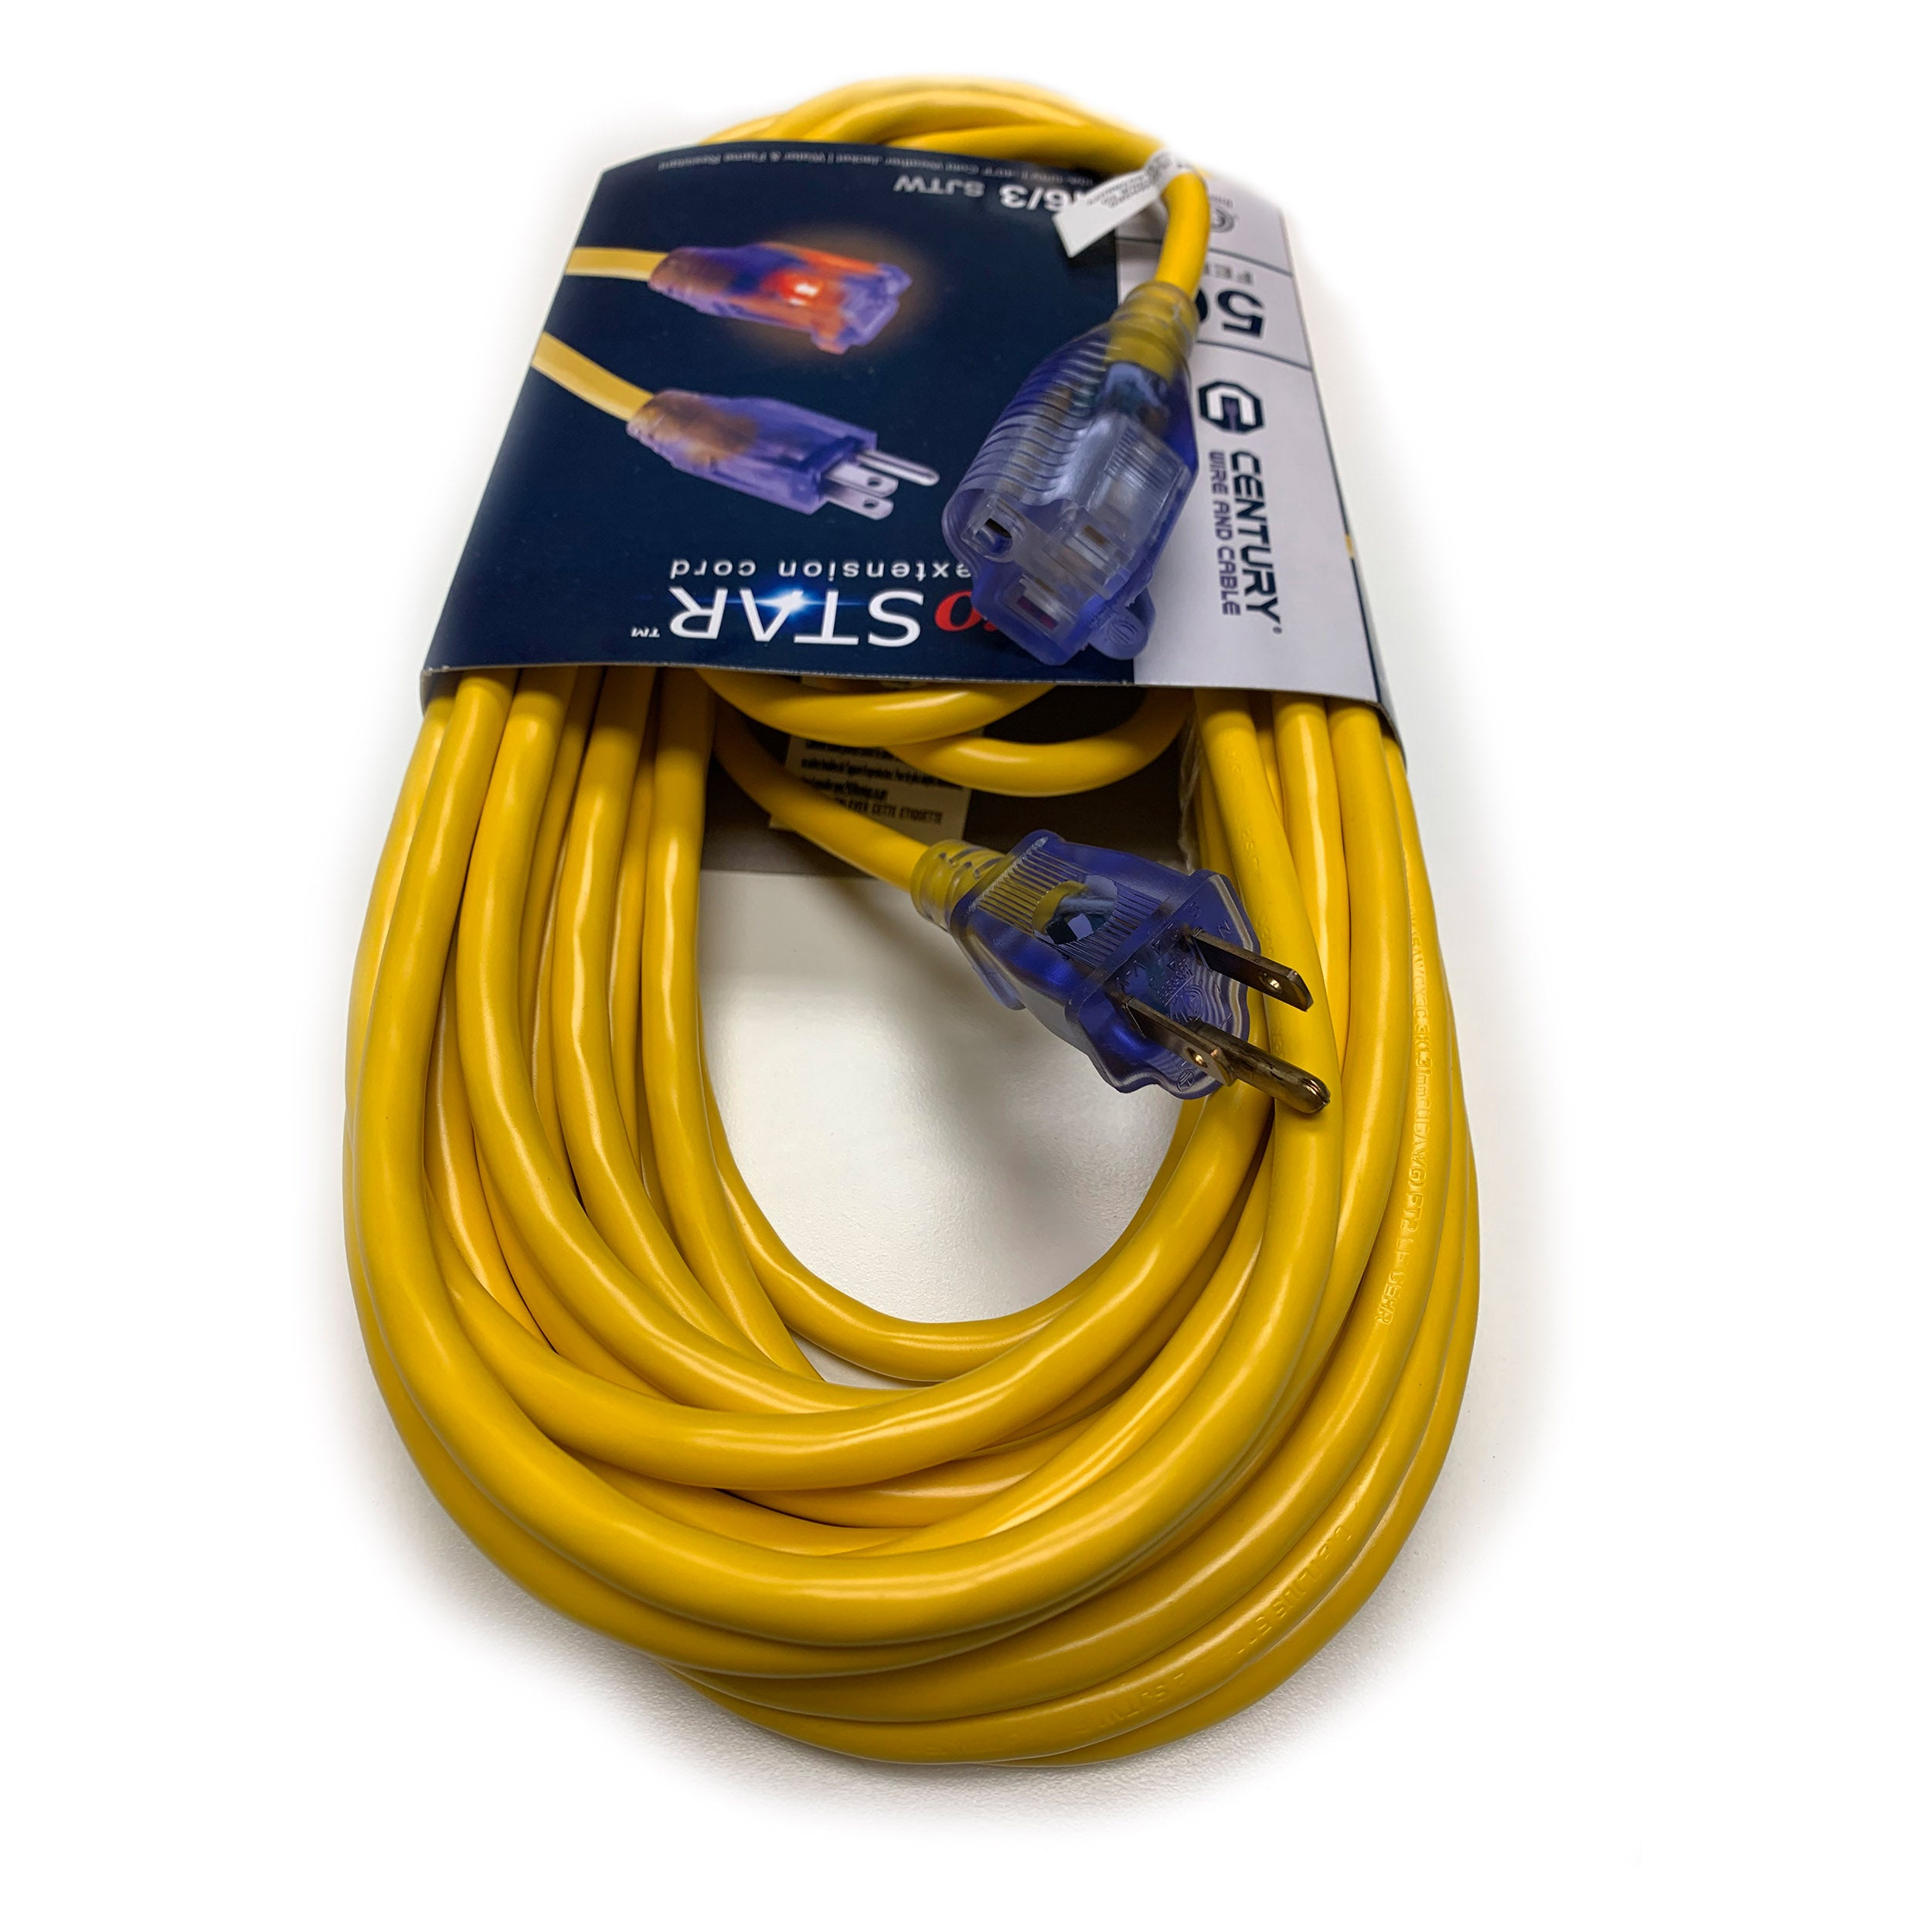 purchase ProStar Electrical Extension Cord